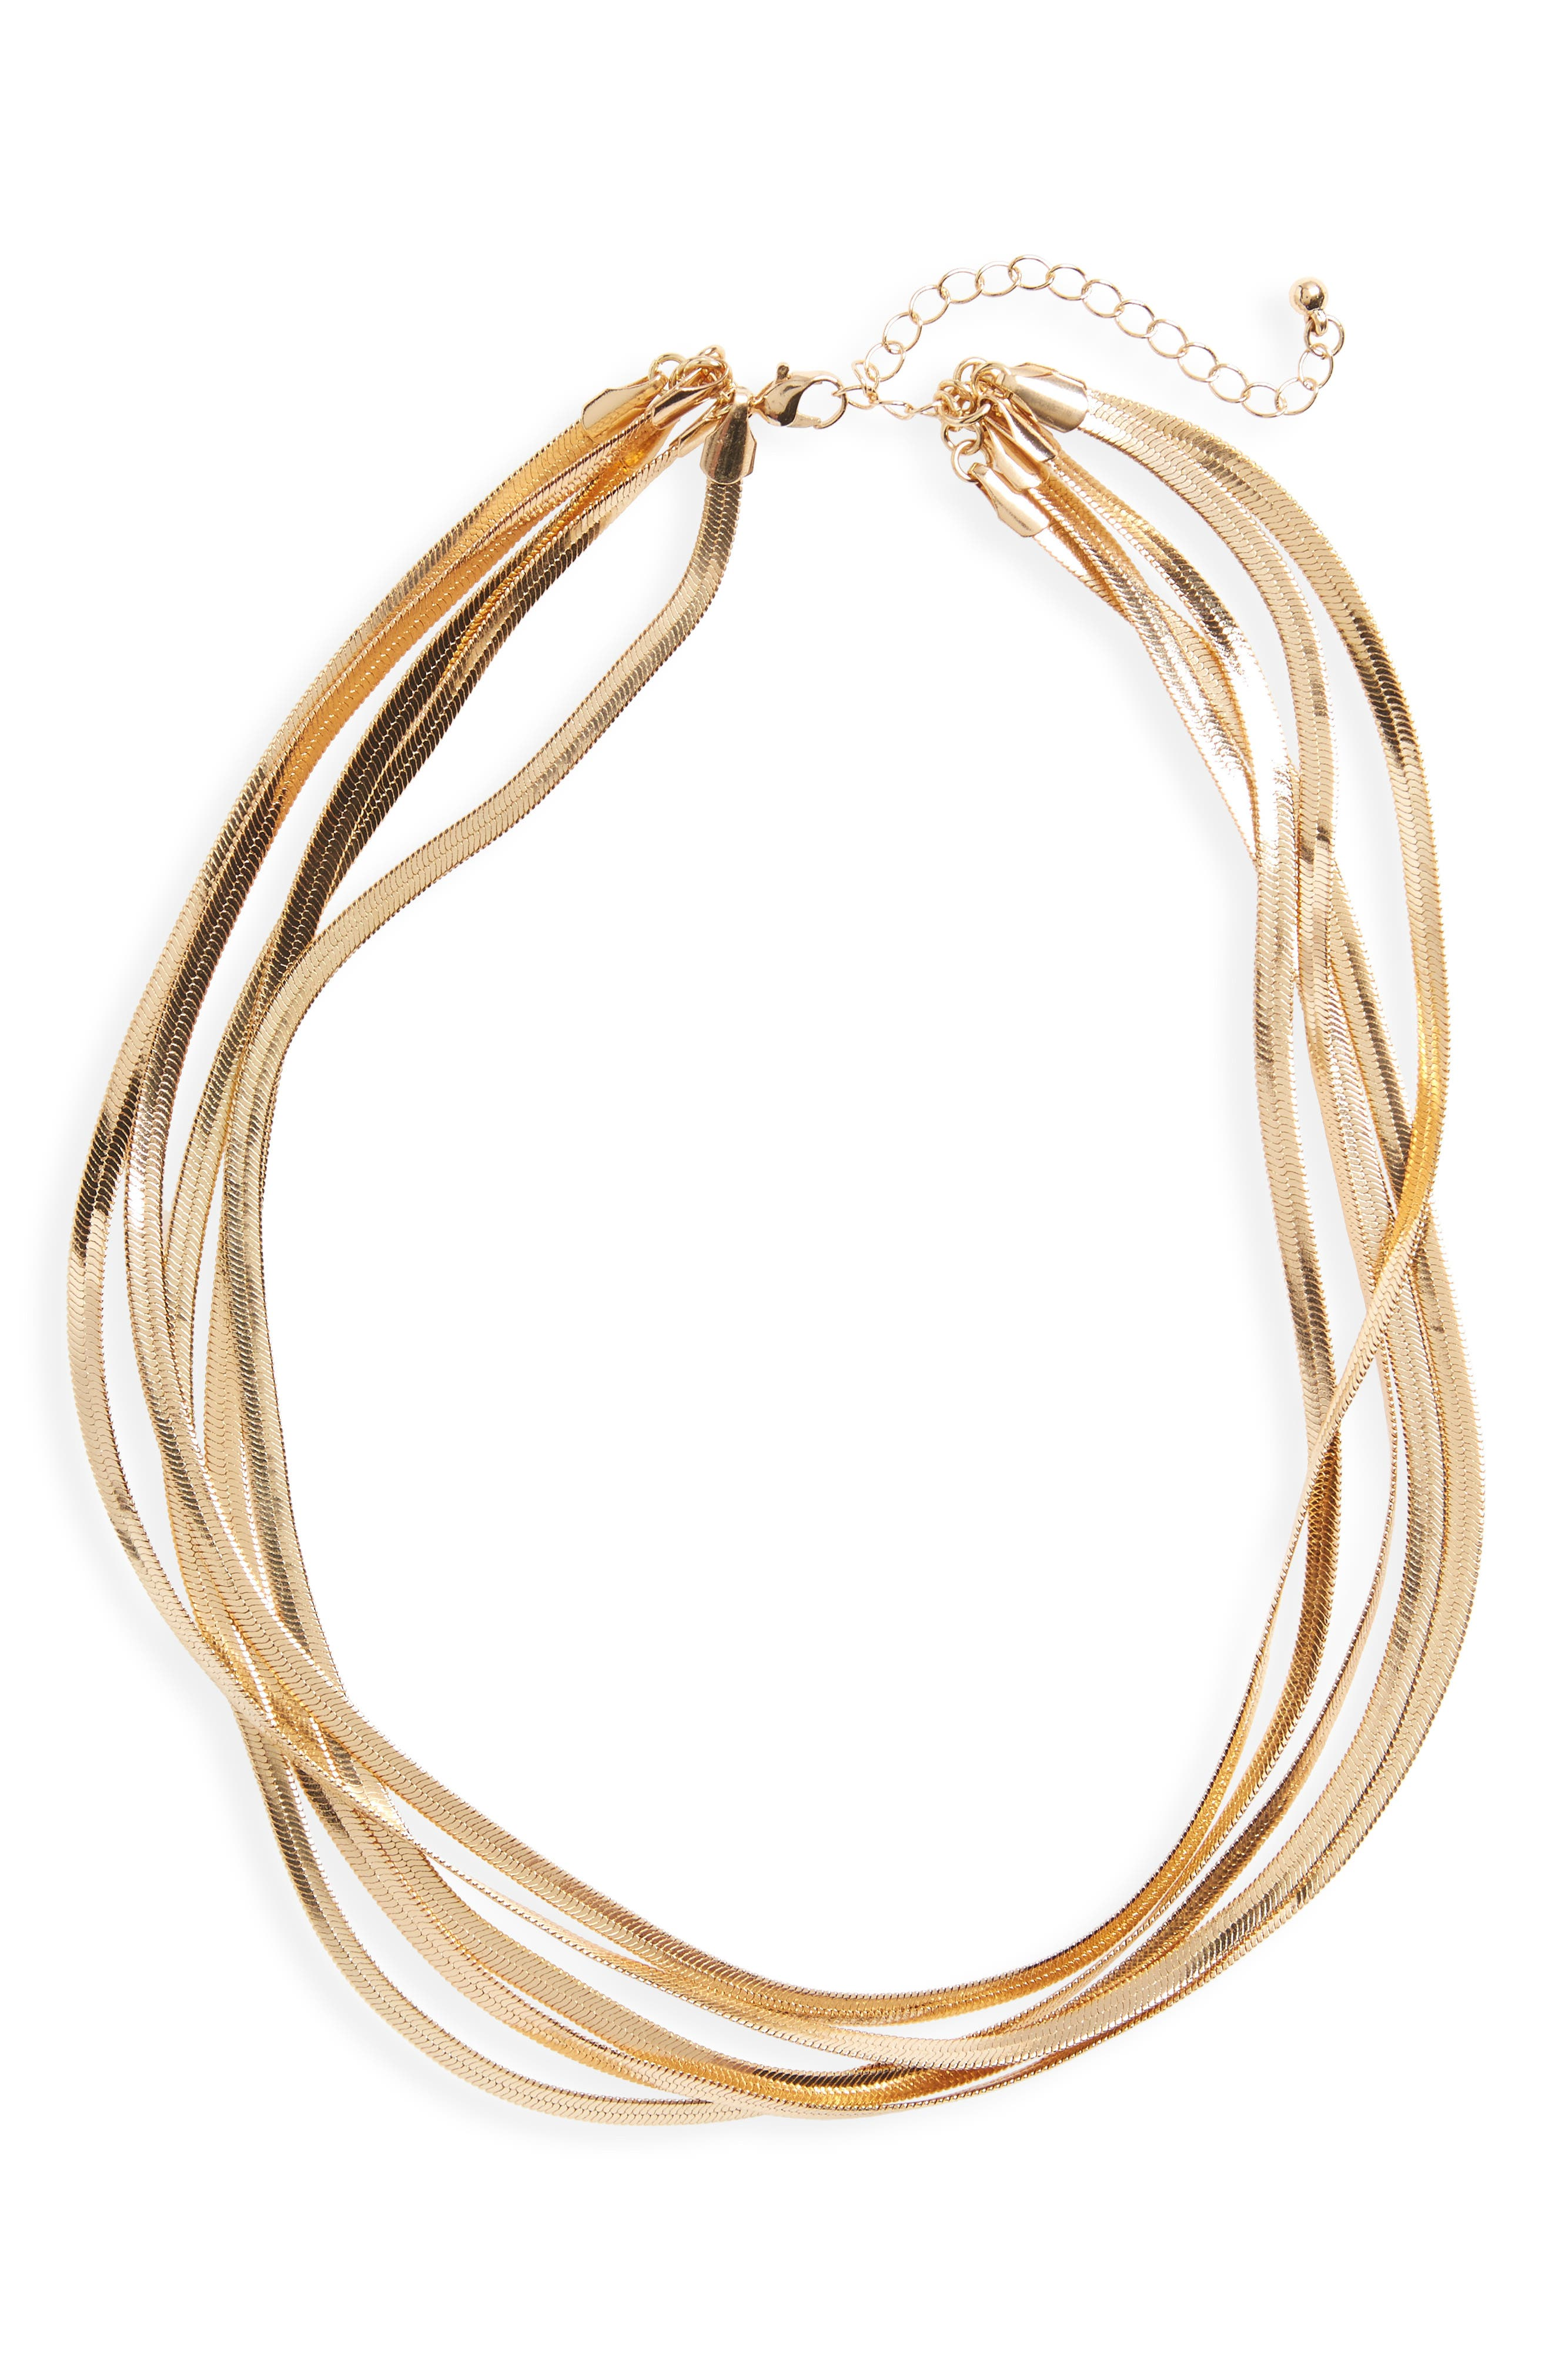 Layered Snake Chain Necklace,                             Main thumbnail 1, color,                             710